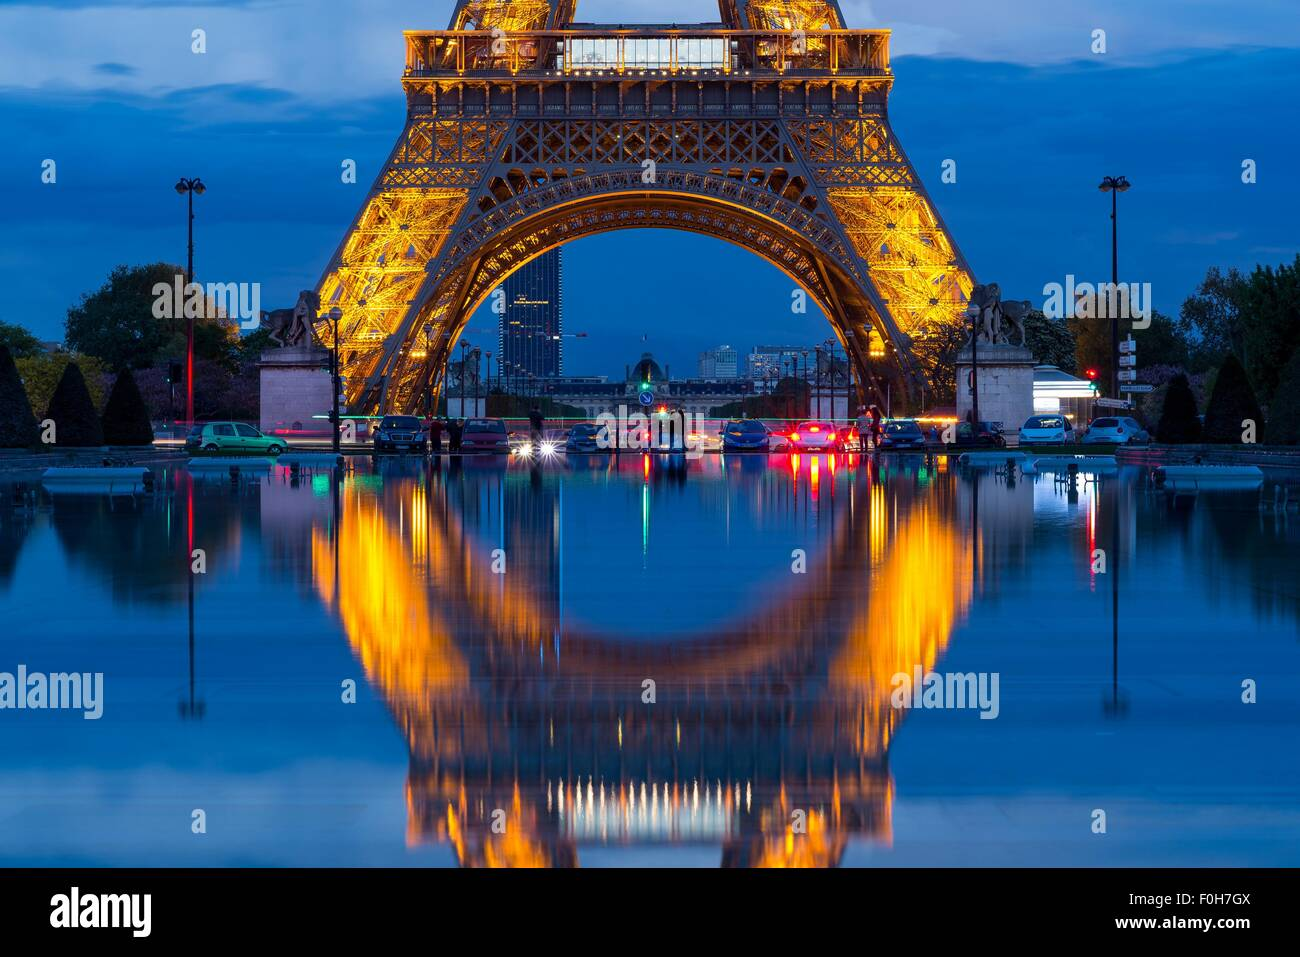 eiffel tower close up shot from the trocadero gardens - Stock Image